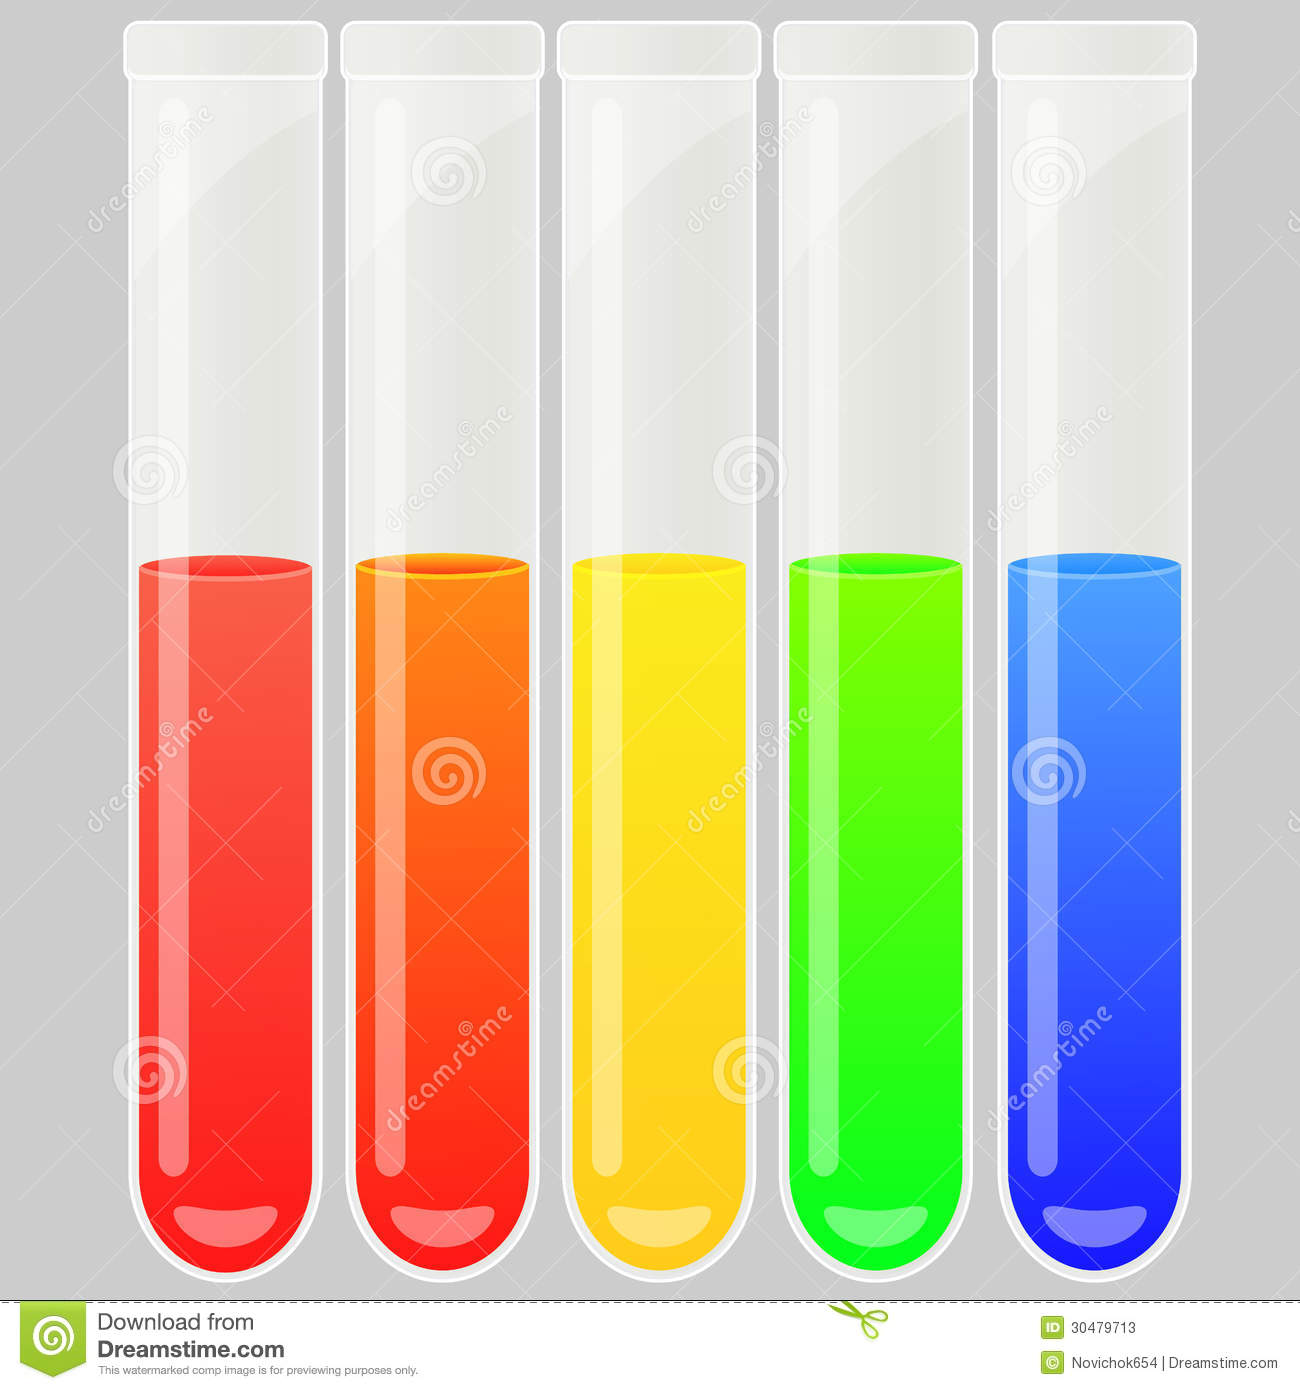 Test Tube Set Stock Photos - Image: 30479713